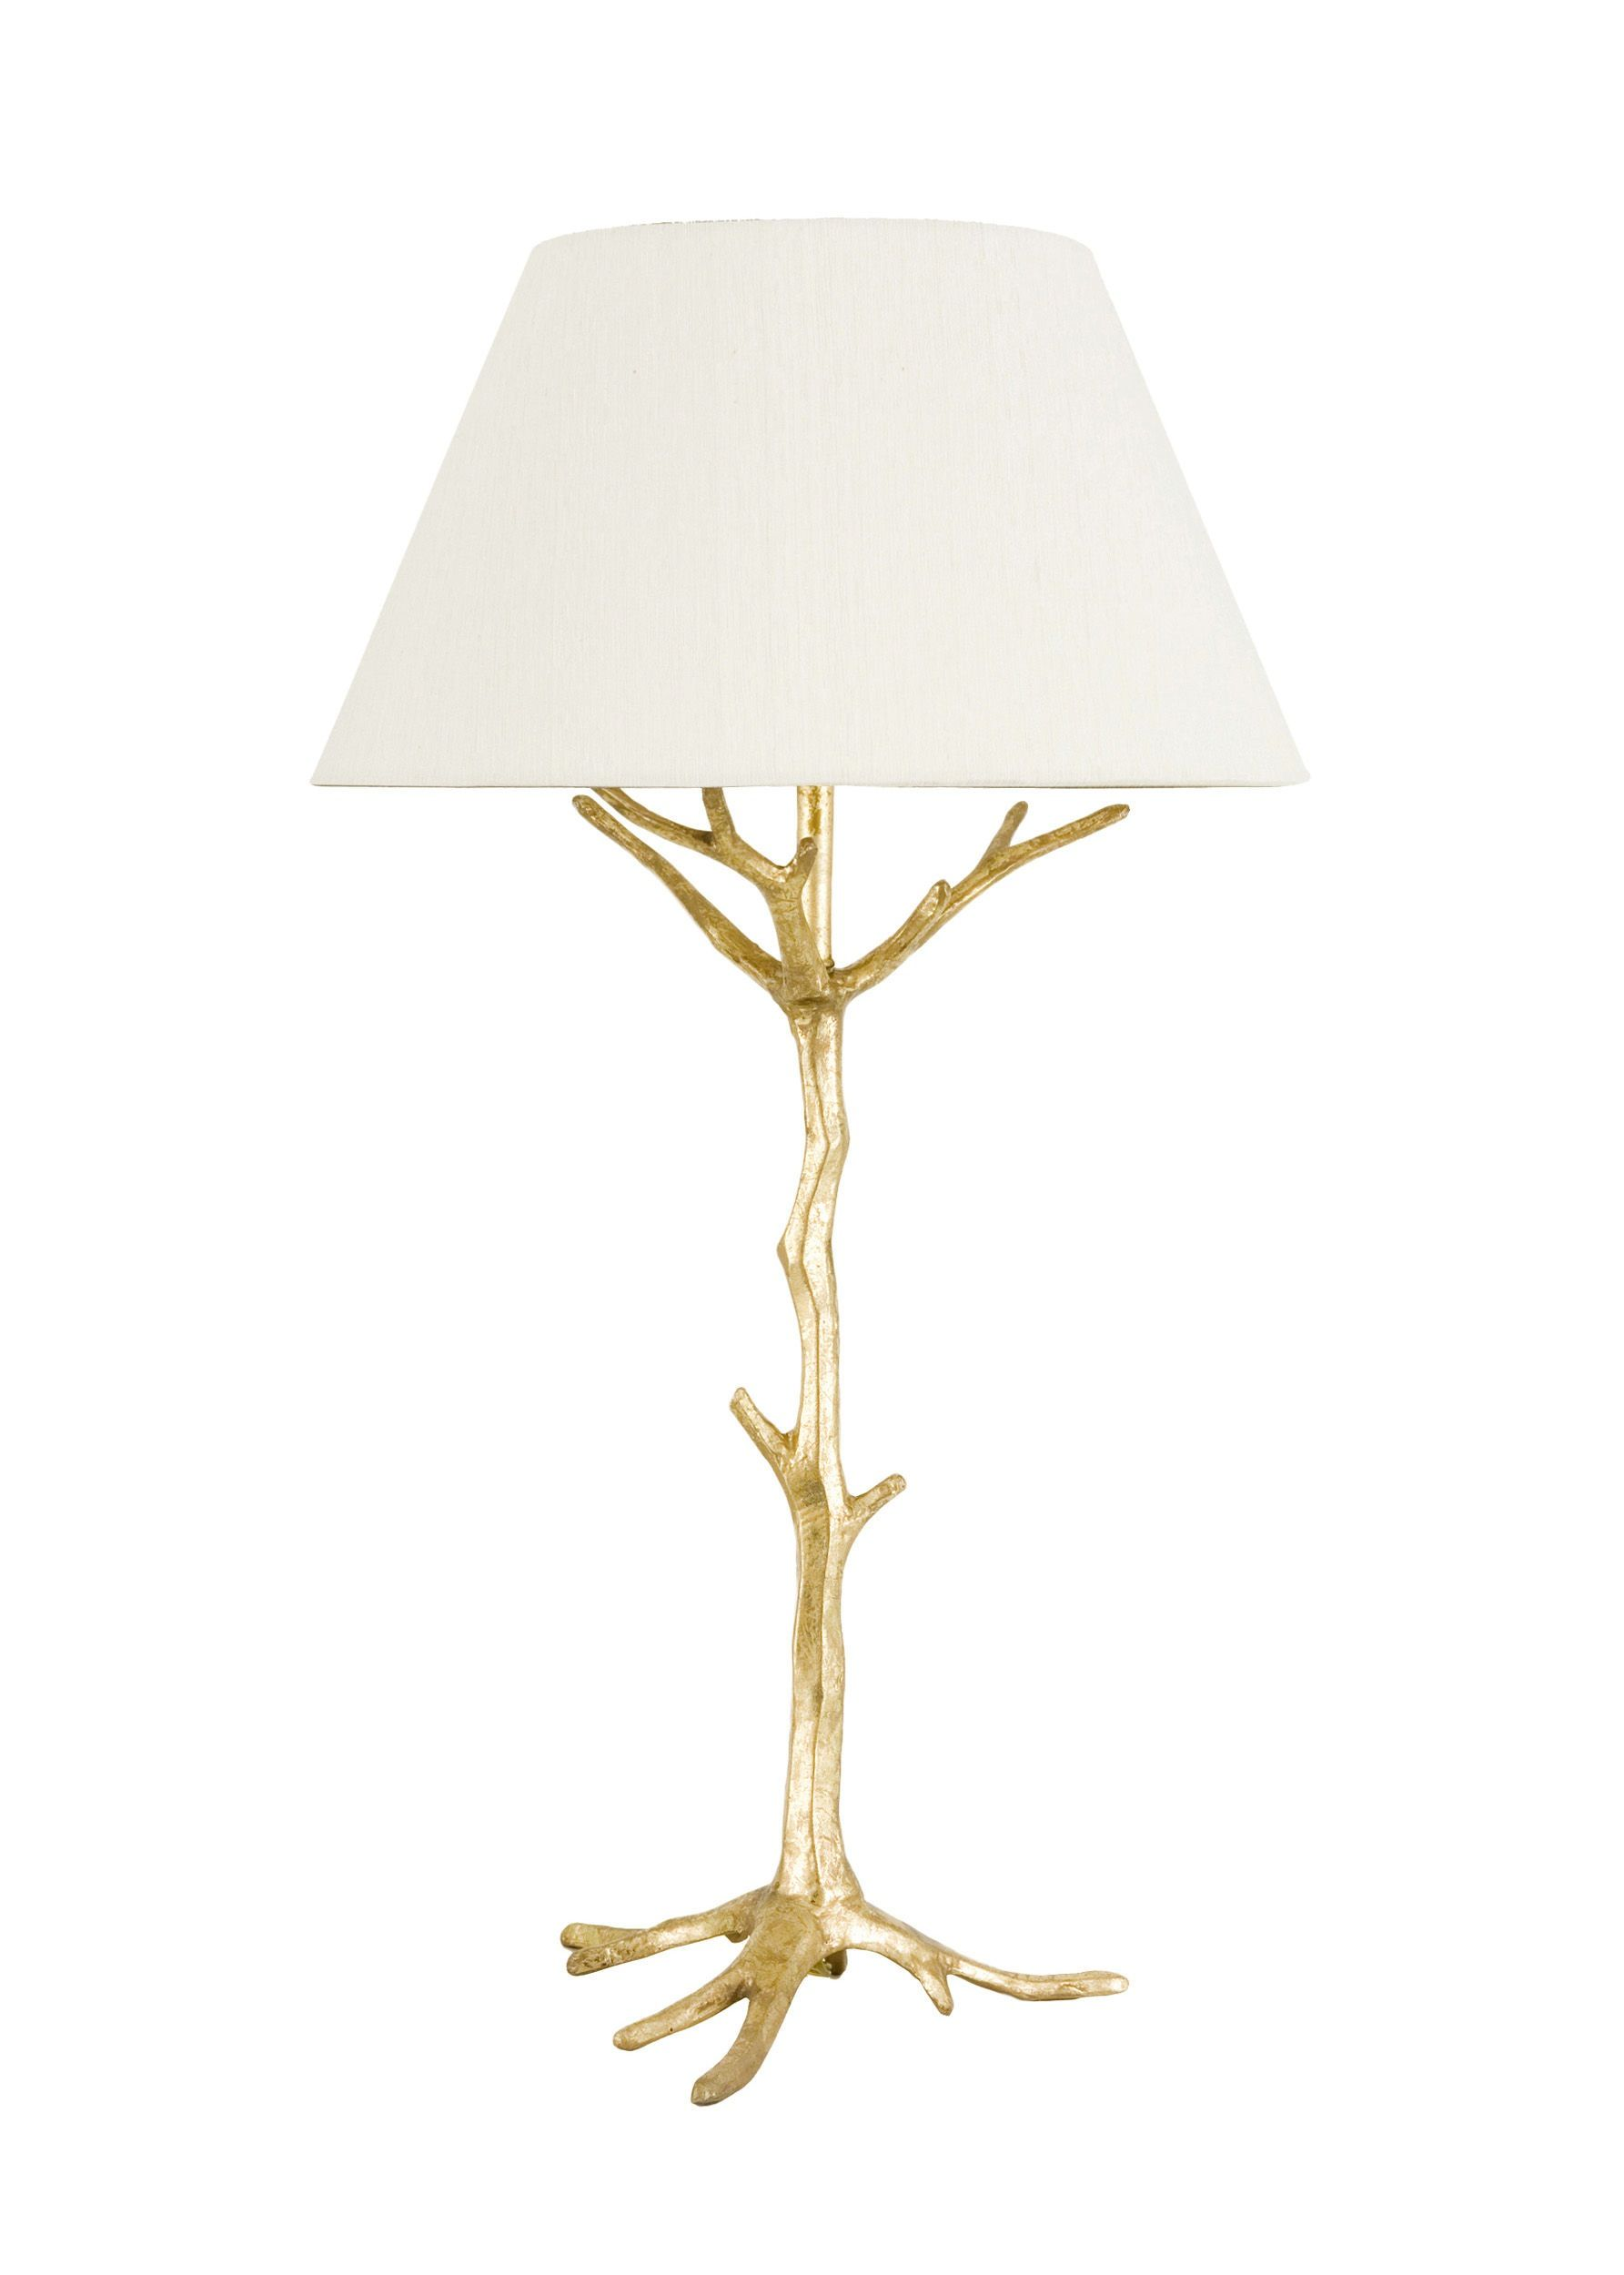 and floor lamp lamps round mesmerizing overarching amusing arc gold black ikea metal white